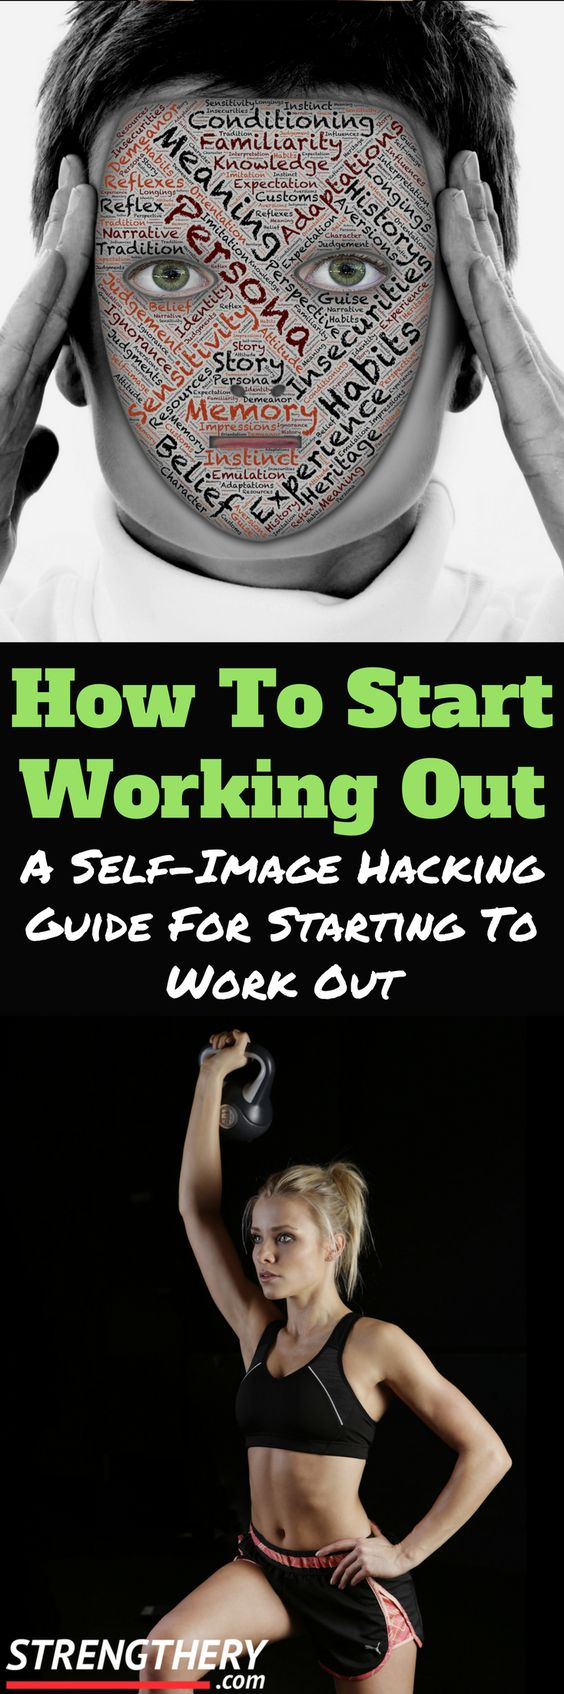 Are you having problems starting working out? Discover the self-image hack that not many fitness professionals mention when teaching how to start working out.